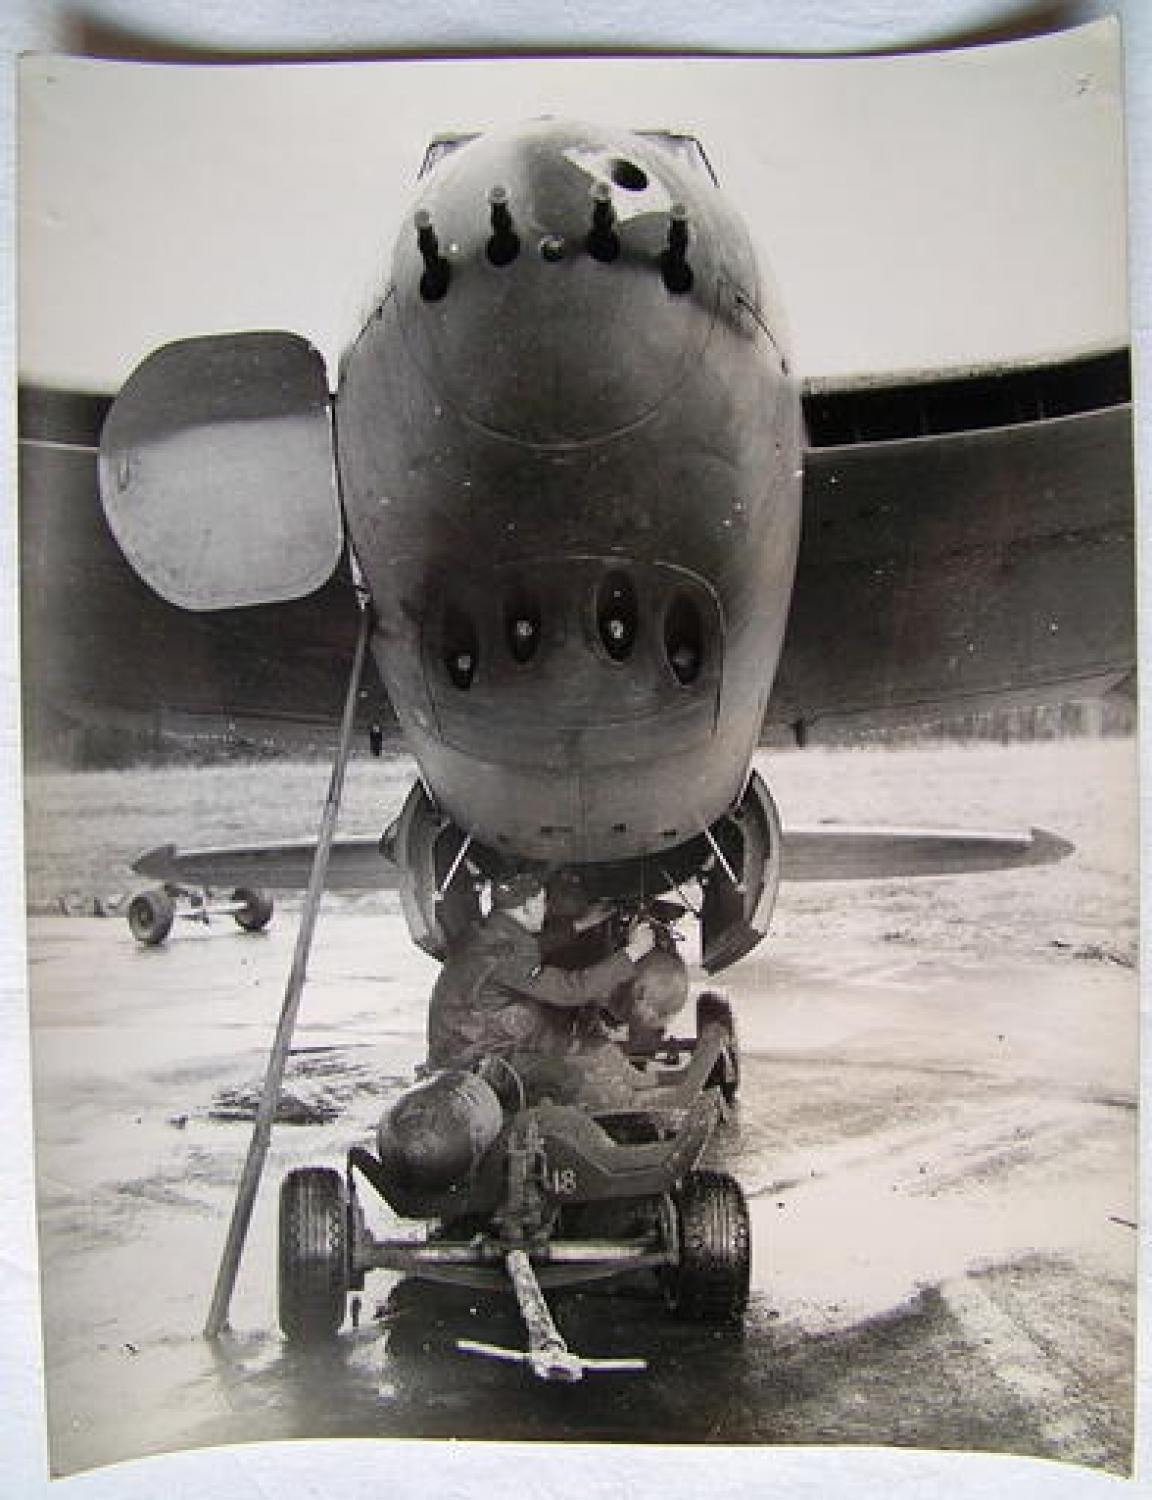 Official A.M. Photo - New Mosquito Weapon